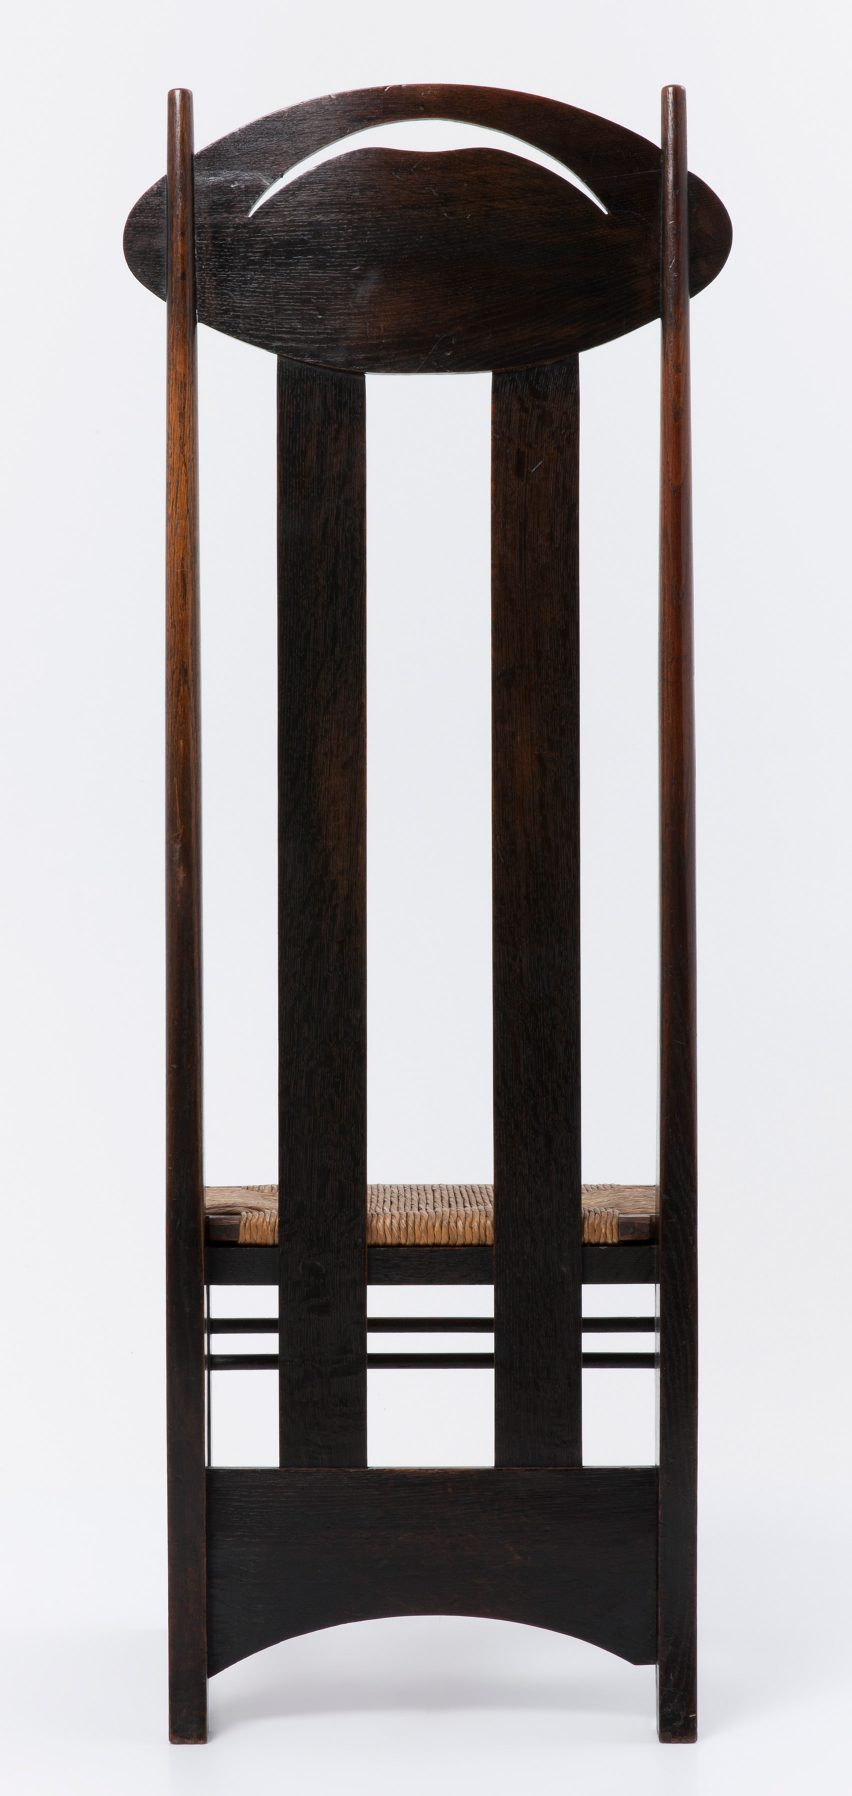 charles rennie mackintosh argyle chair was designed create design furniture dezeen col metal virgil accent table modern tables for living room bridal shower basket ideas kitchen